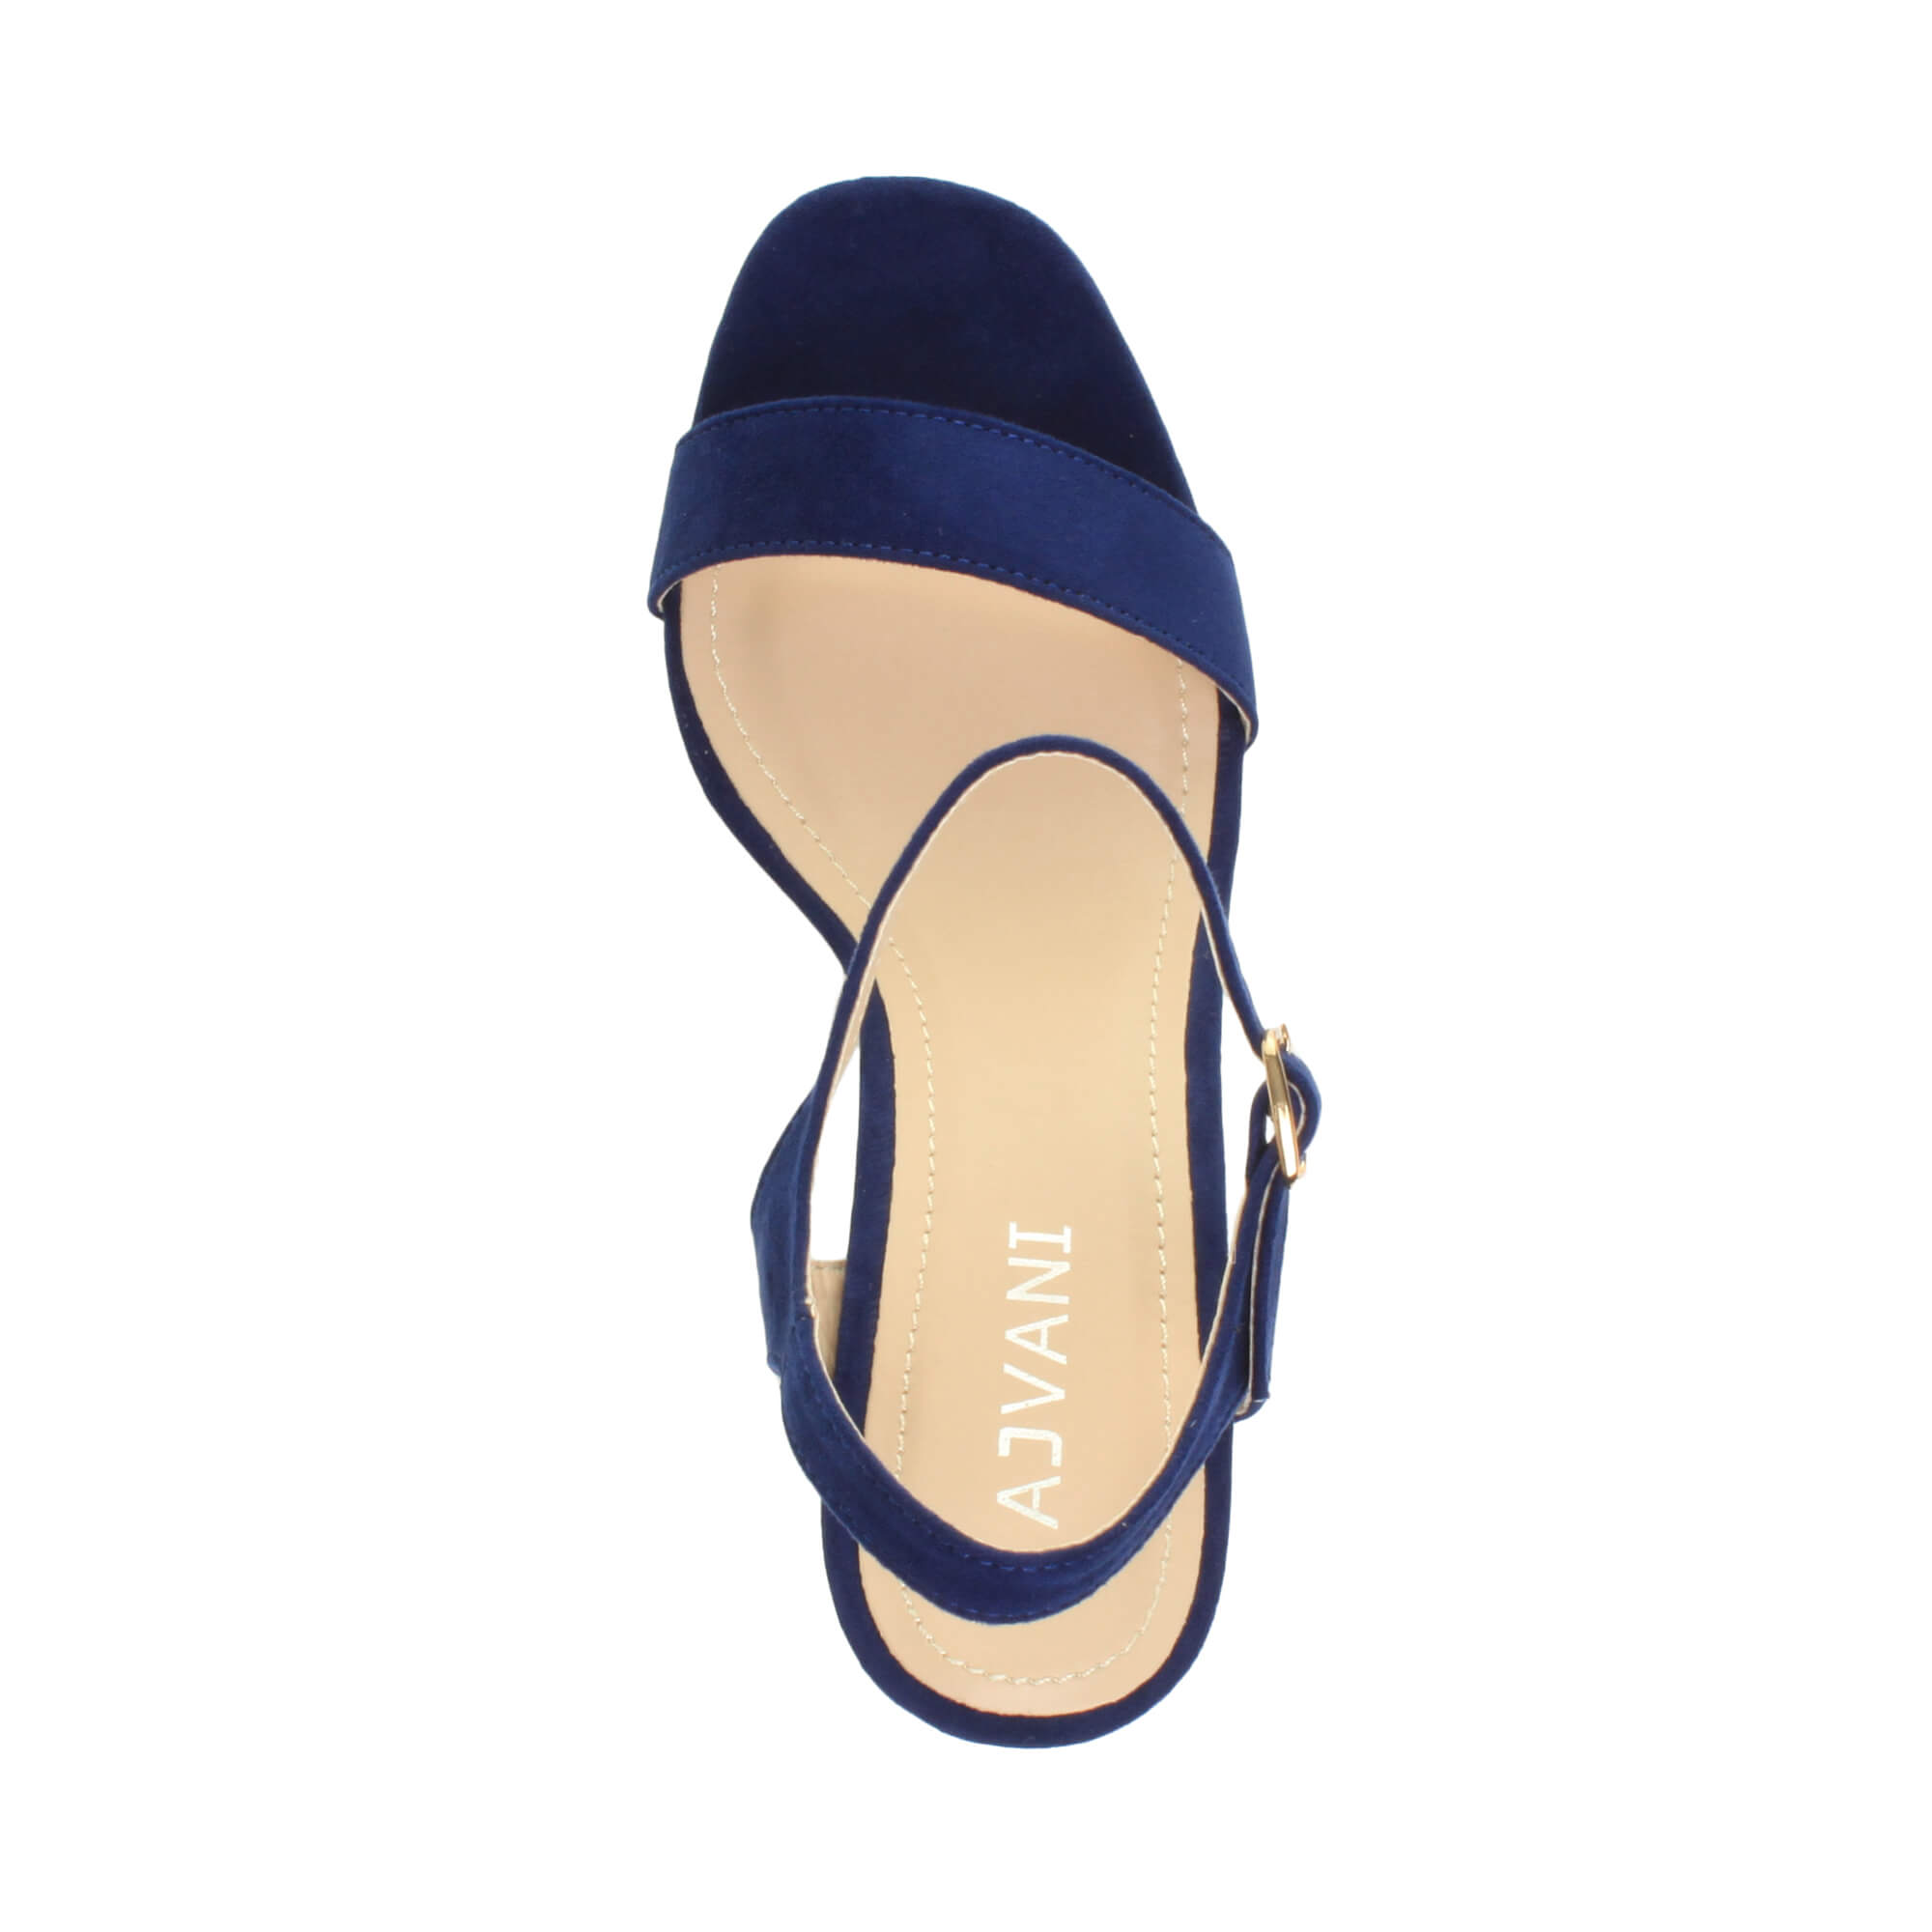 WOMENS-LADIES-HIGH-HEEL-BUCKLE-STRAPPY-BASIC-BARELY-THERE-SANDALS-SHOES-SIZE thumbnail 21